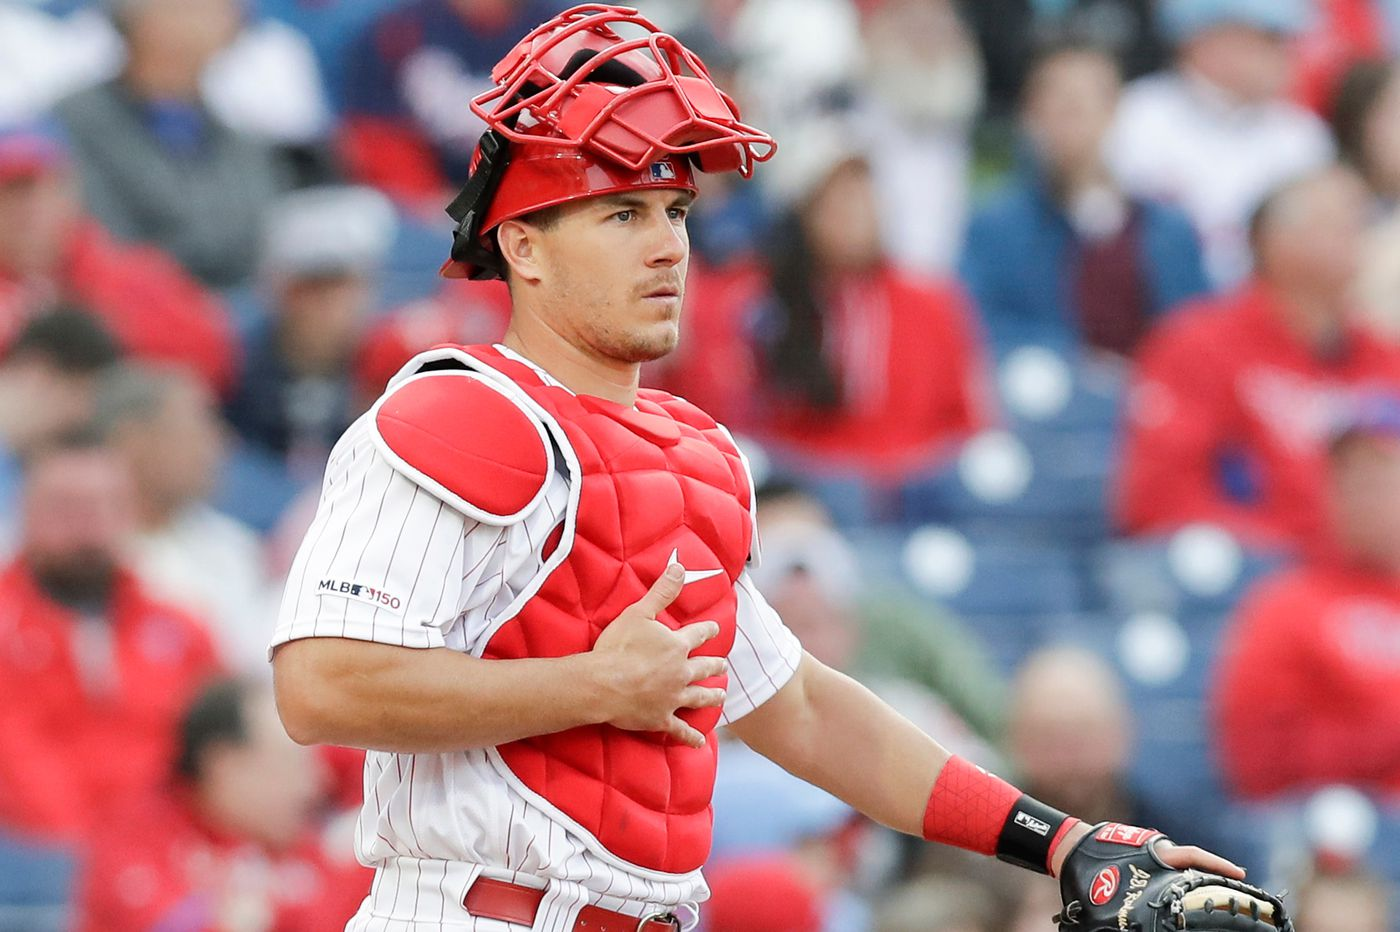 New Phillies boss Dave Dombrowski speaks with J.T. Realmuto's agent